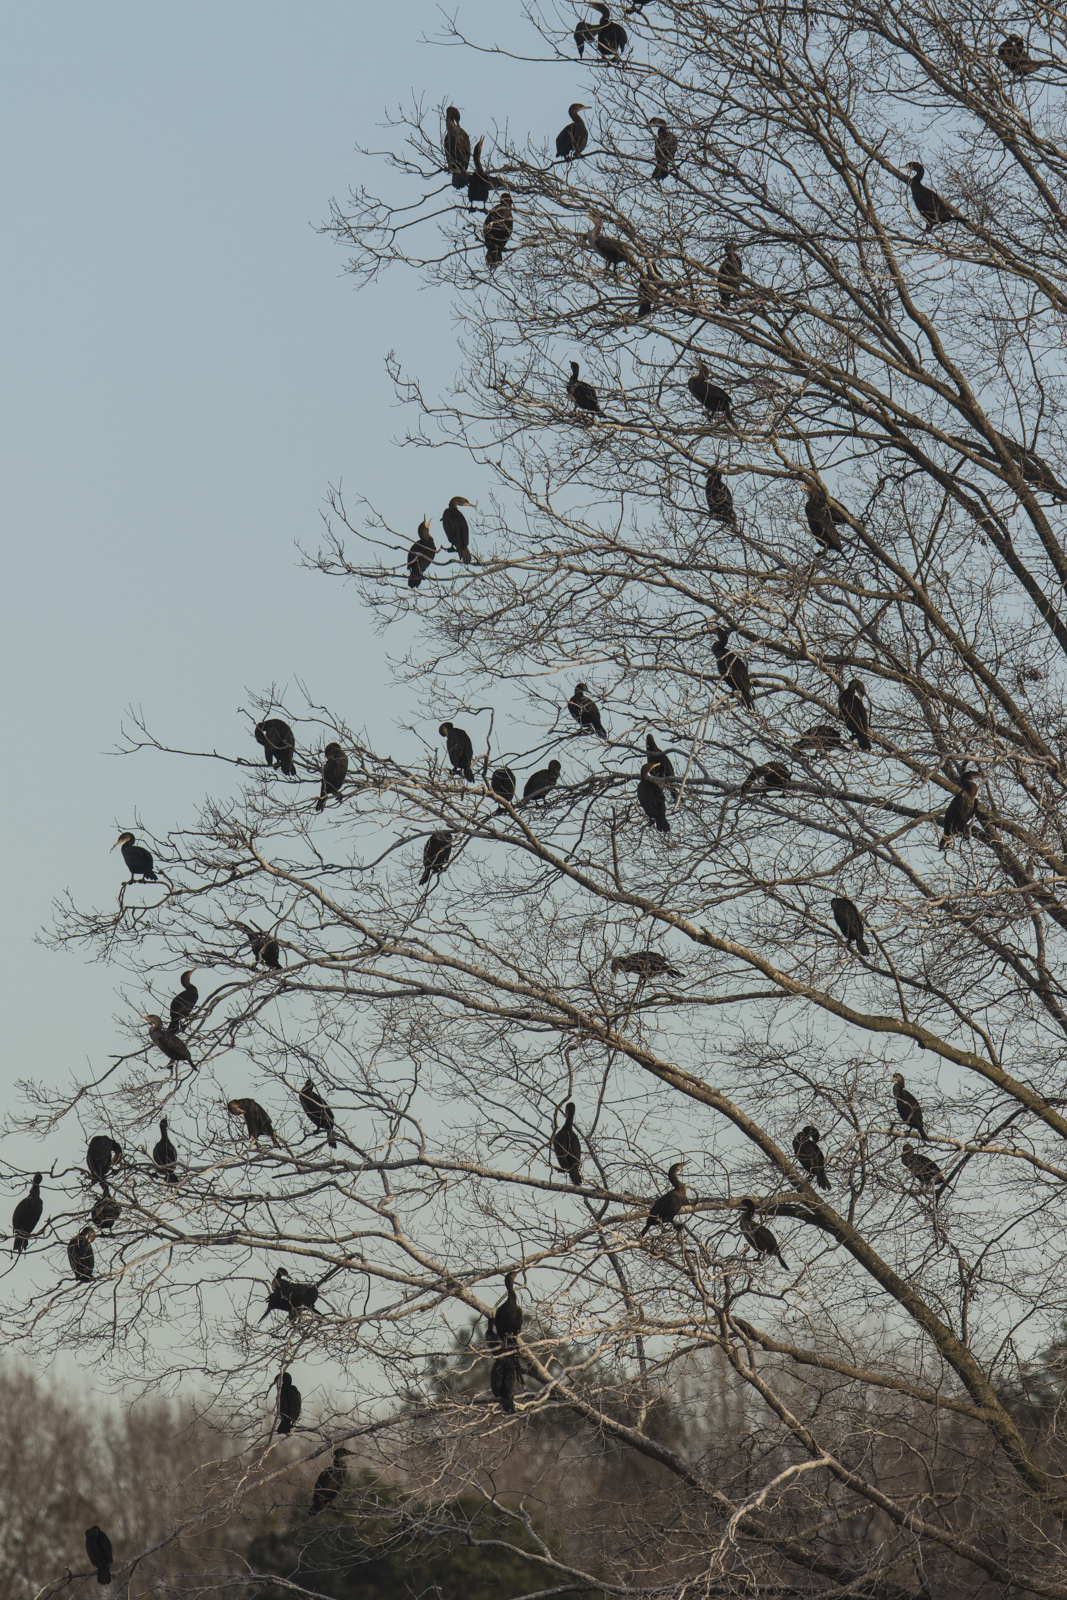 Cormorants in tree